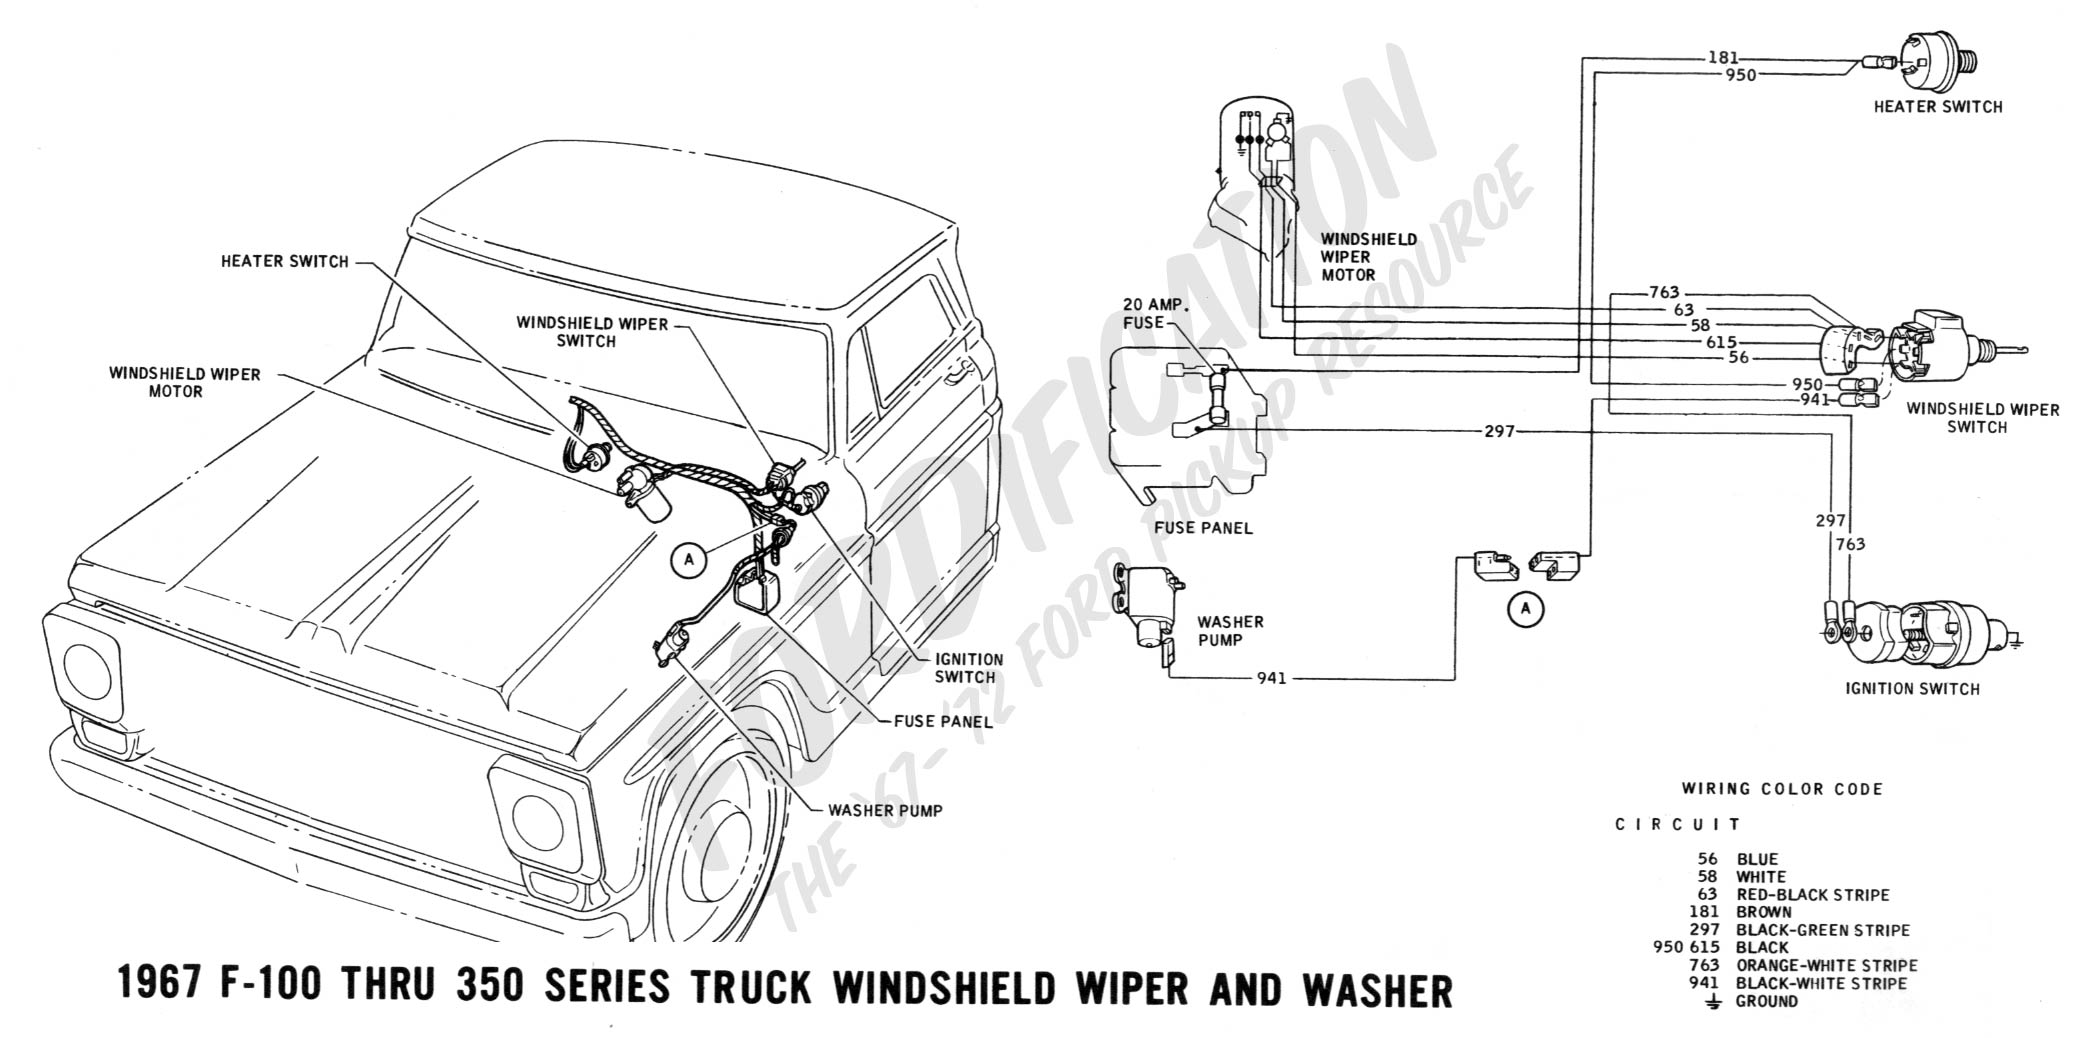 wiring 1967wipers wiper wiring diagram wiper wiring diagram for 1985 chevy vega 1999 ford explorer rear wiper wiring diagram at soozxer.org